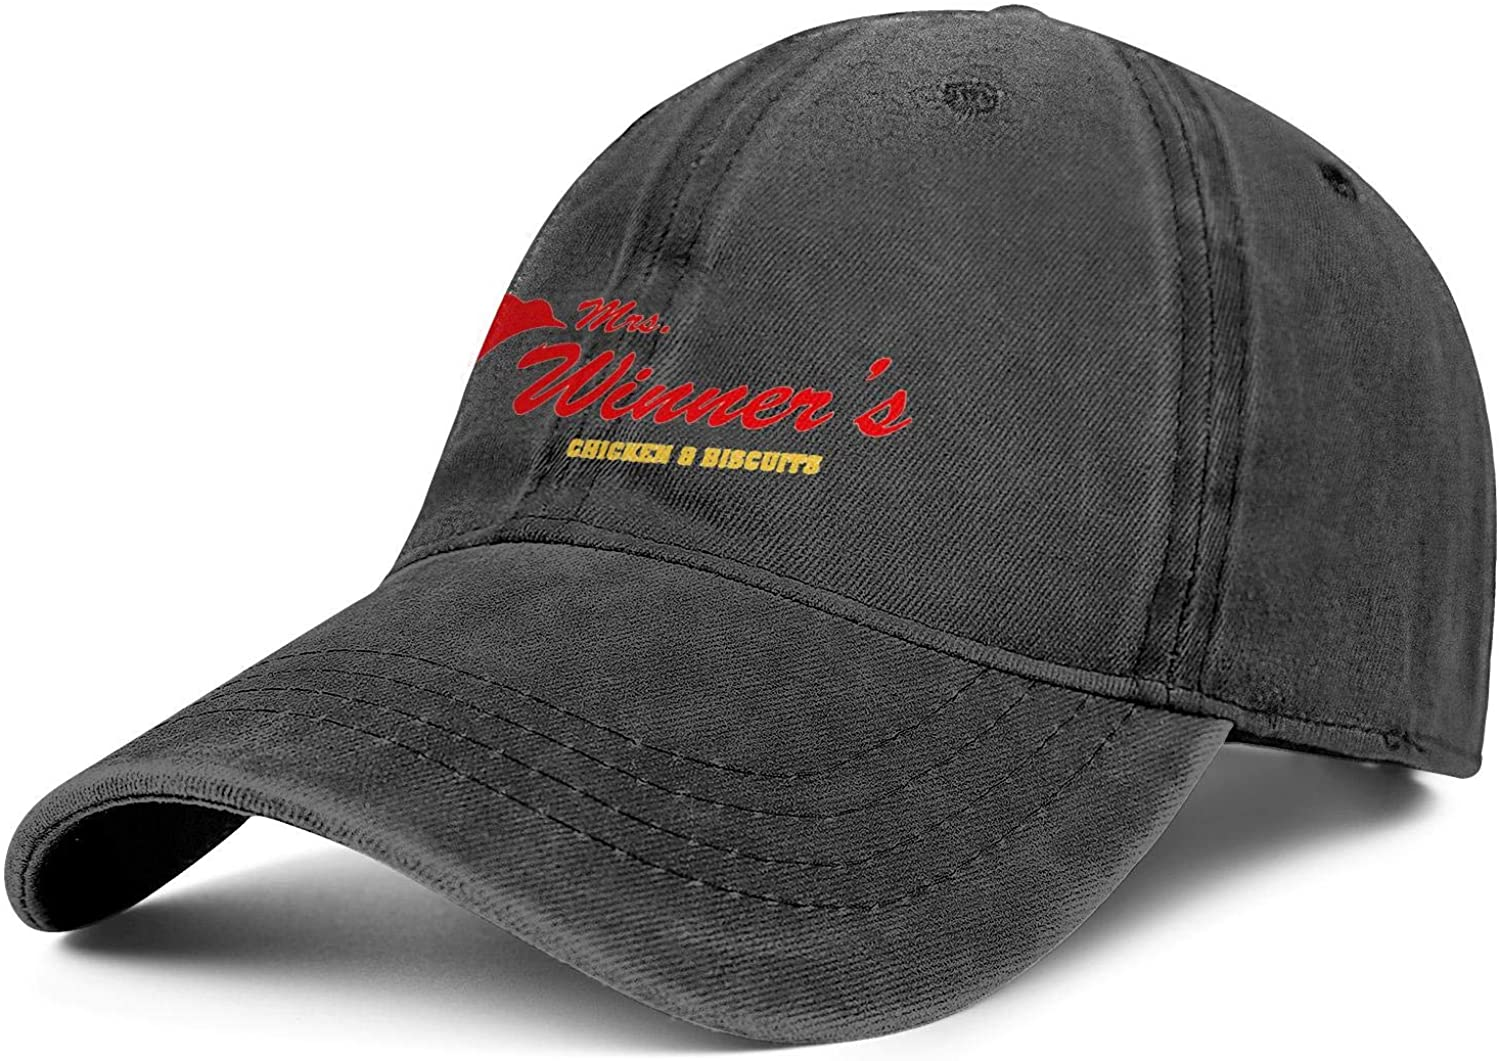 Winners Chicken and Bisc New Logo Hat Adjustable Fitted Dad Baseball Cap Trucker Hat Cowboy Hat Unisex Mrs